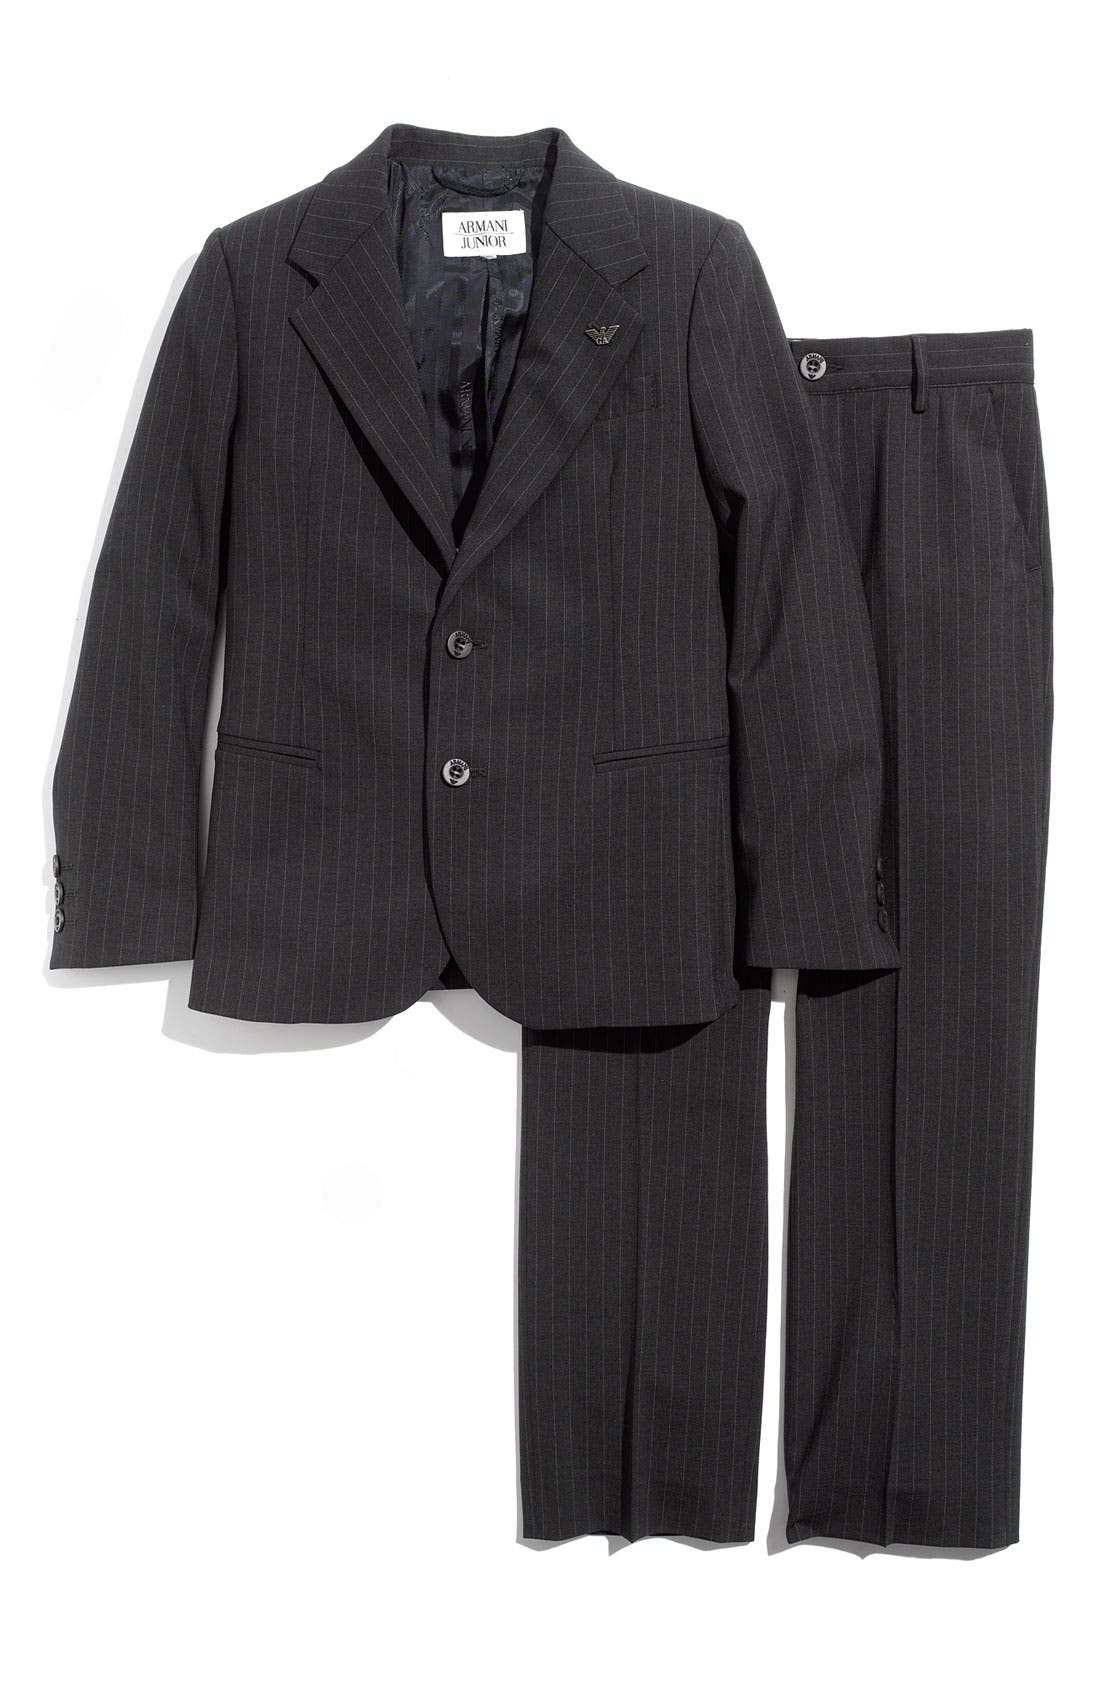 Alternate Image 1 Selected - Armani Junior Two Piece Suit (Big Boys)